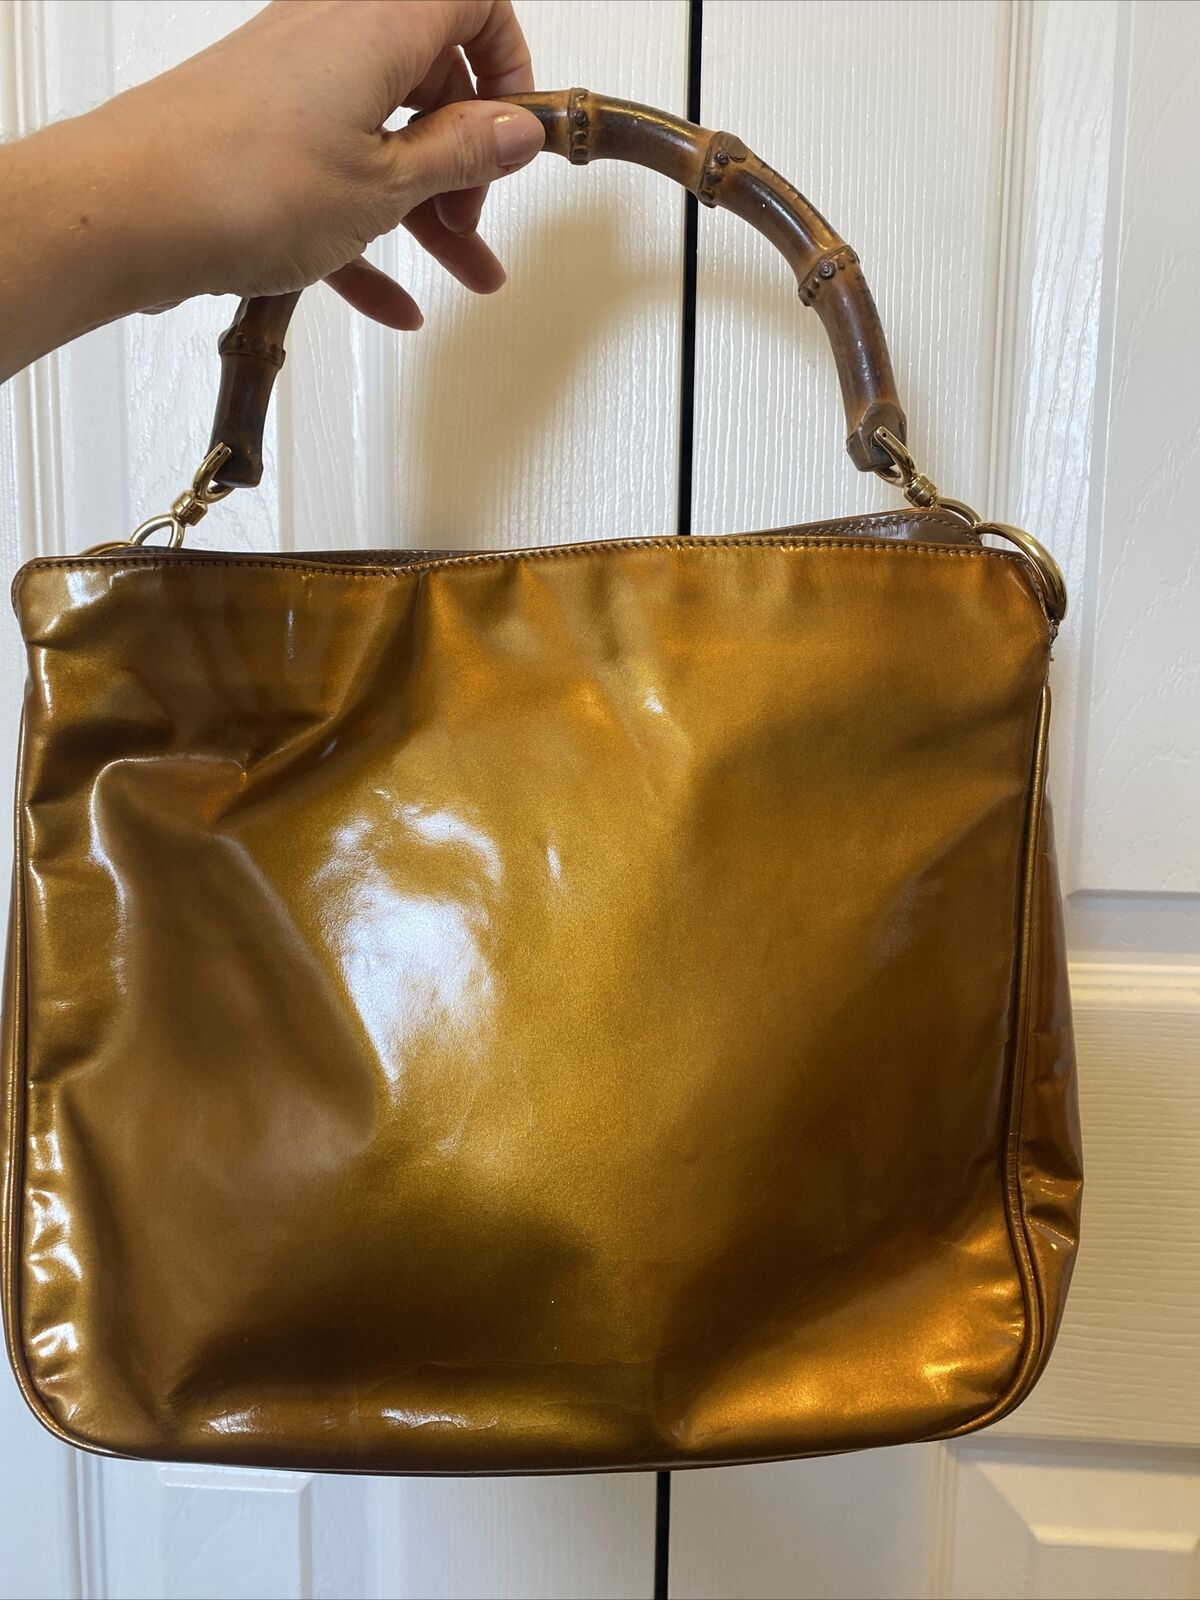 GUCCI COPPER BAMBOO HANDLE BAG VINTAGE DIANA LEAT… - image 3